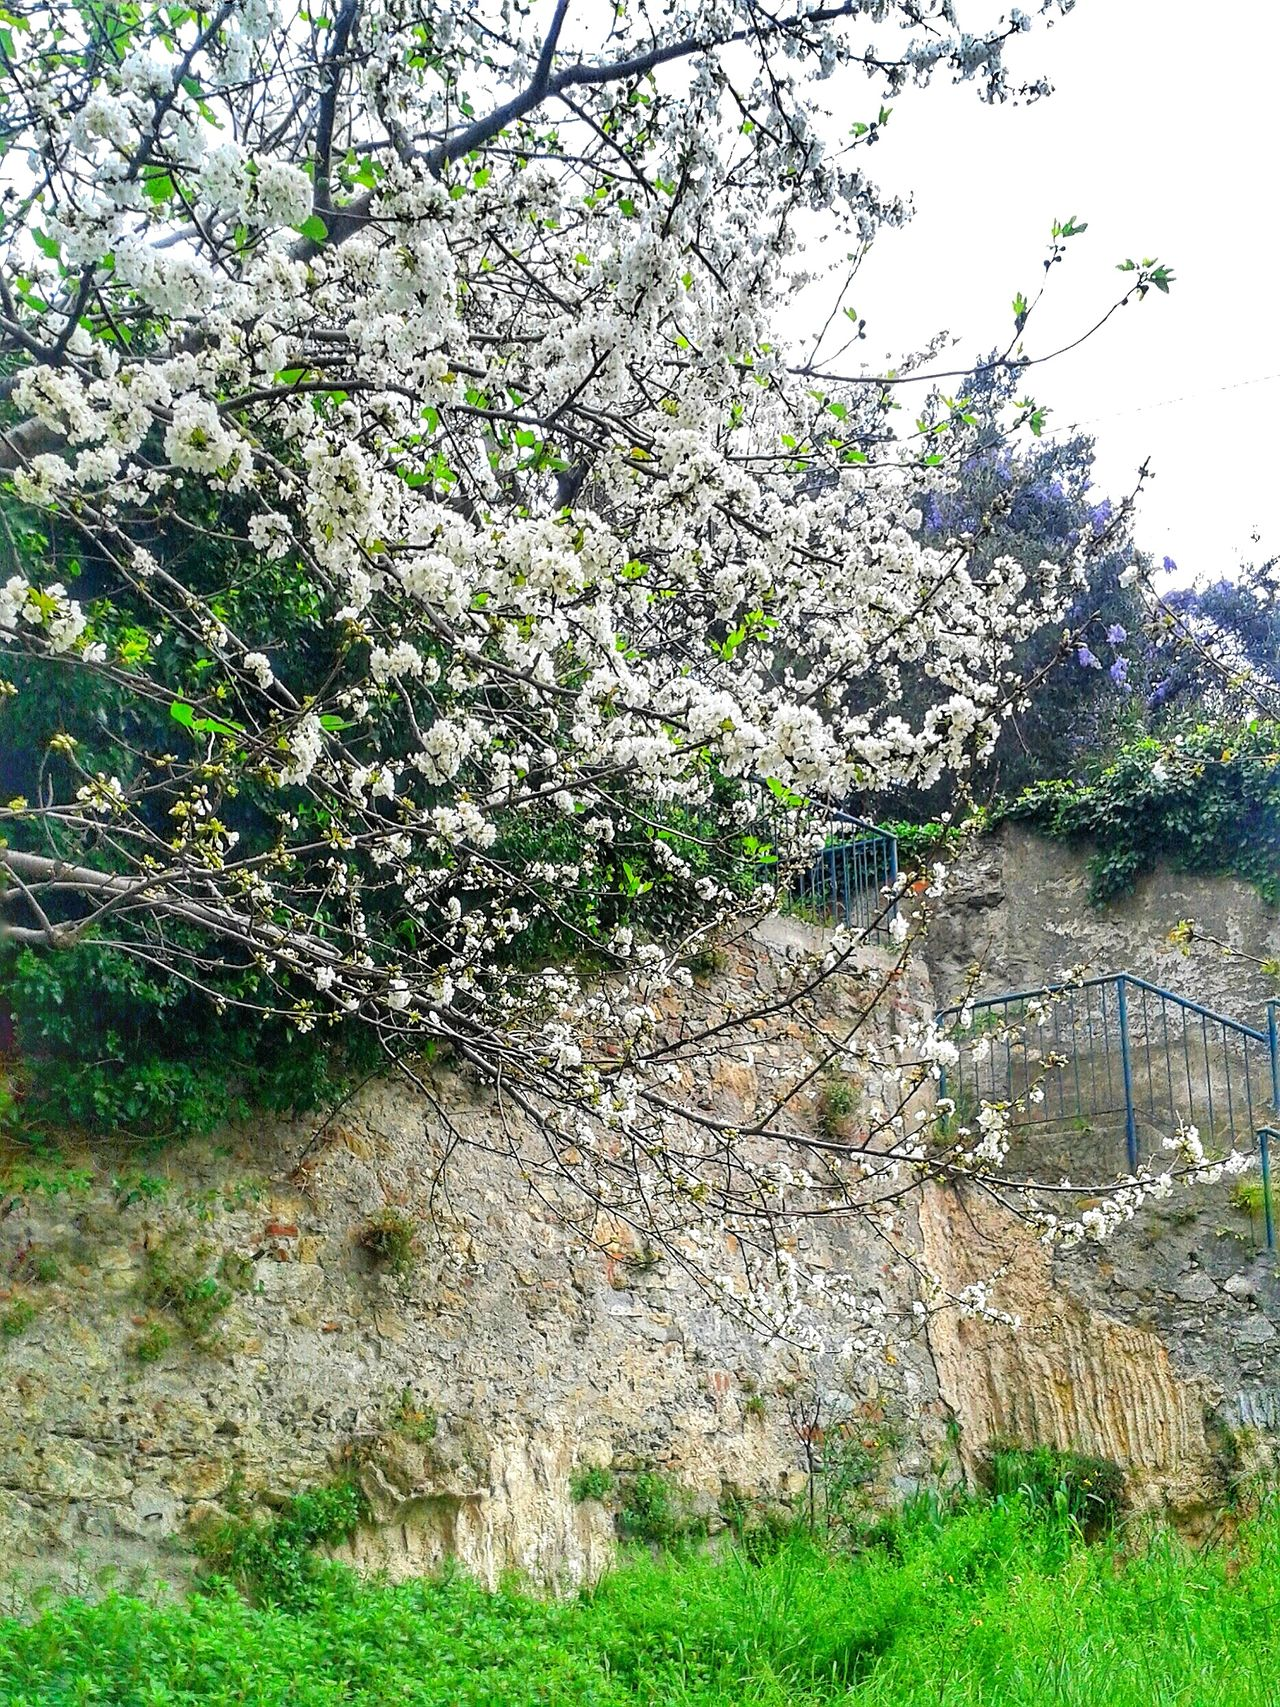 """""""Fioritura"""". Fioritura Blooming Blossom Trees Urban Spring Fever Spring Is Coming  White Flowers Walking Around in My Neighbourhood Mobile Photography with Smartphone Photography S3mini Camerazoomfx in HDR shooting mode Exposure Bracketing Perfectly Clear"""